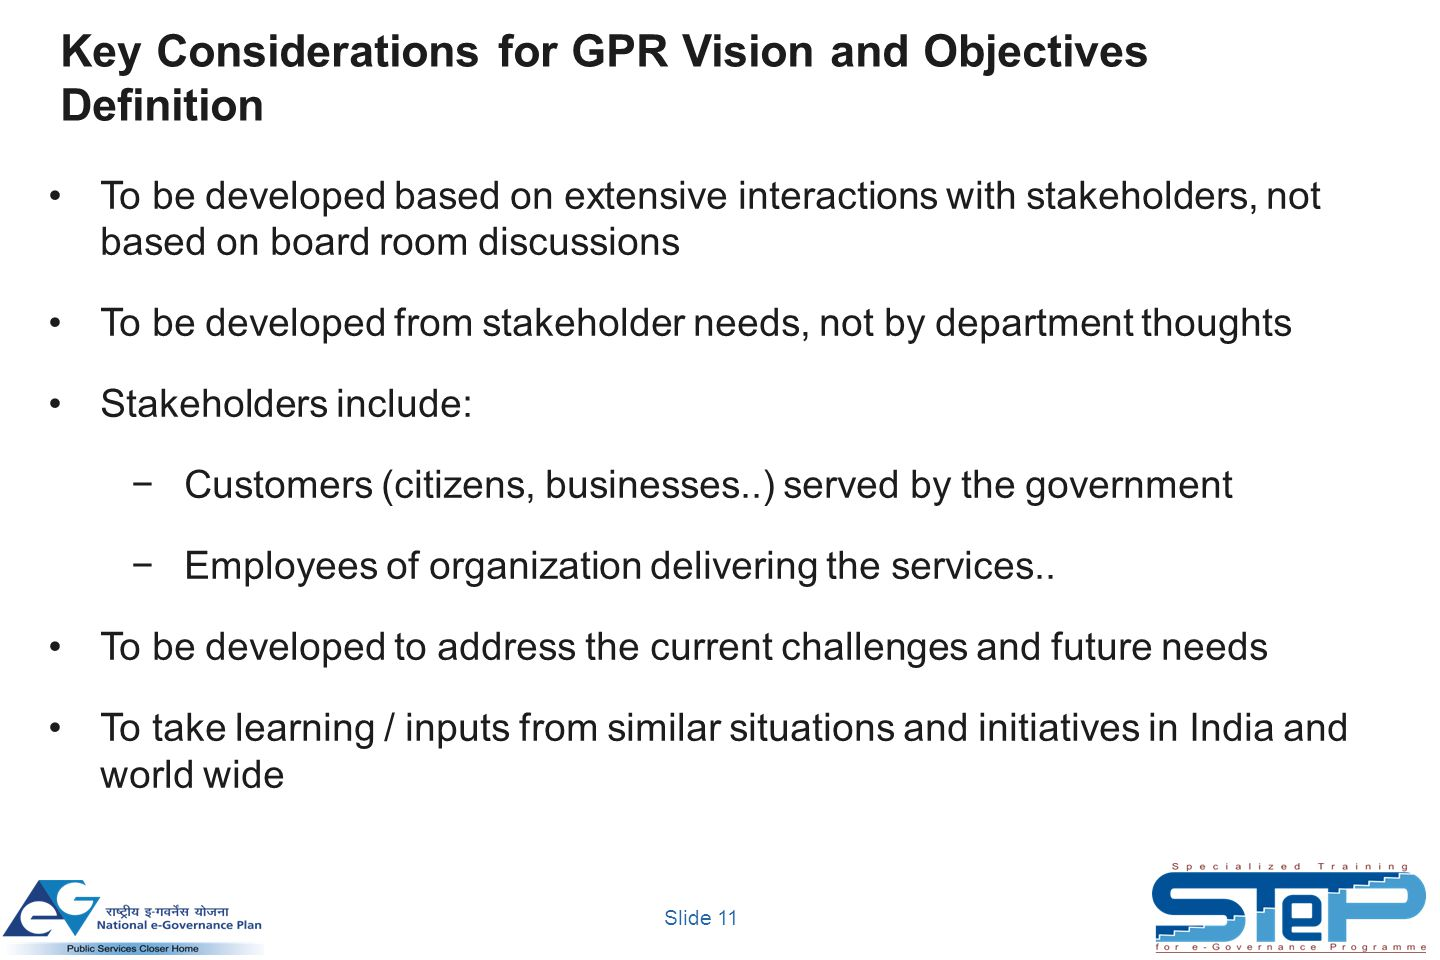 Slide 11 Key Considerations for GPR Vision and Objectives Definition To be developed based on extensive interactions with stakeholders, not based on board room discussions To be developed from stakeholder needs, not by department thoughts Stakeholders include: −Customers (citizens, businesses..) served by the government −Employees of organization delivering the services..